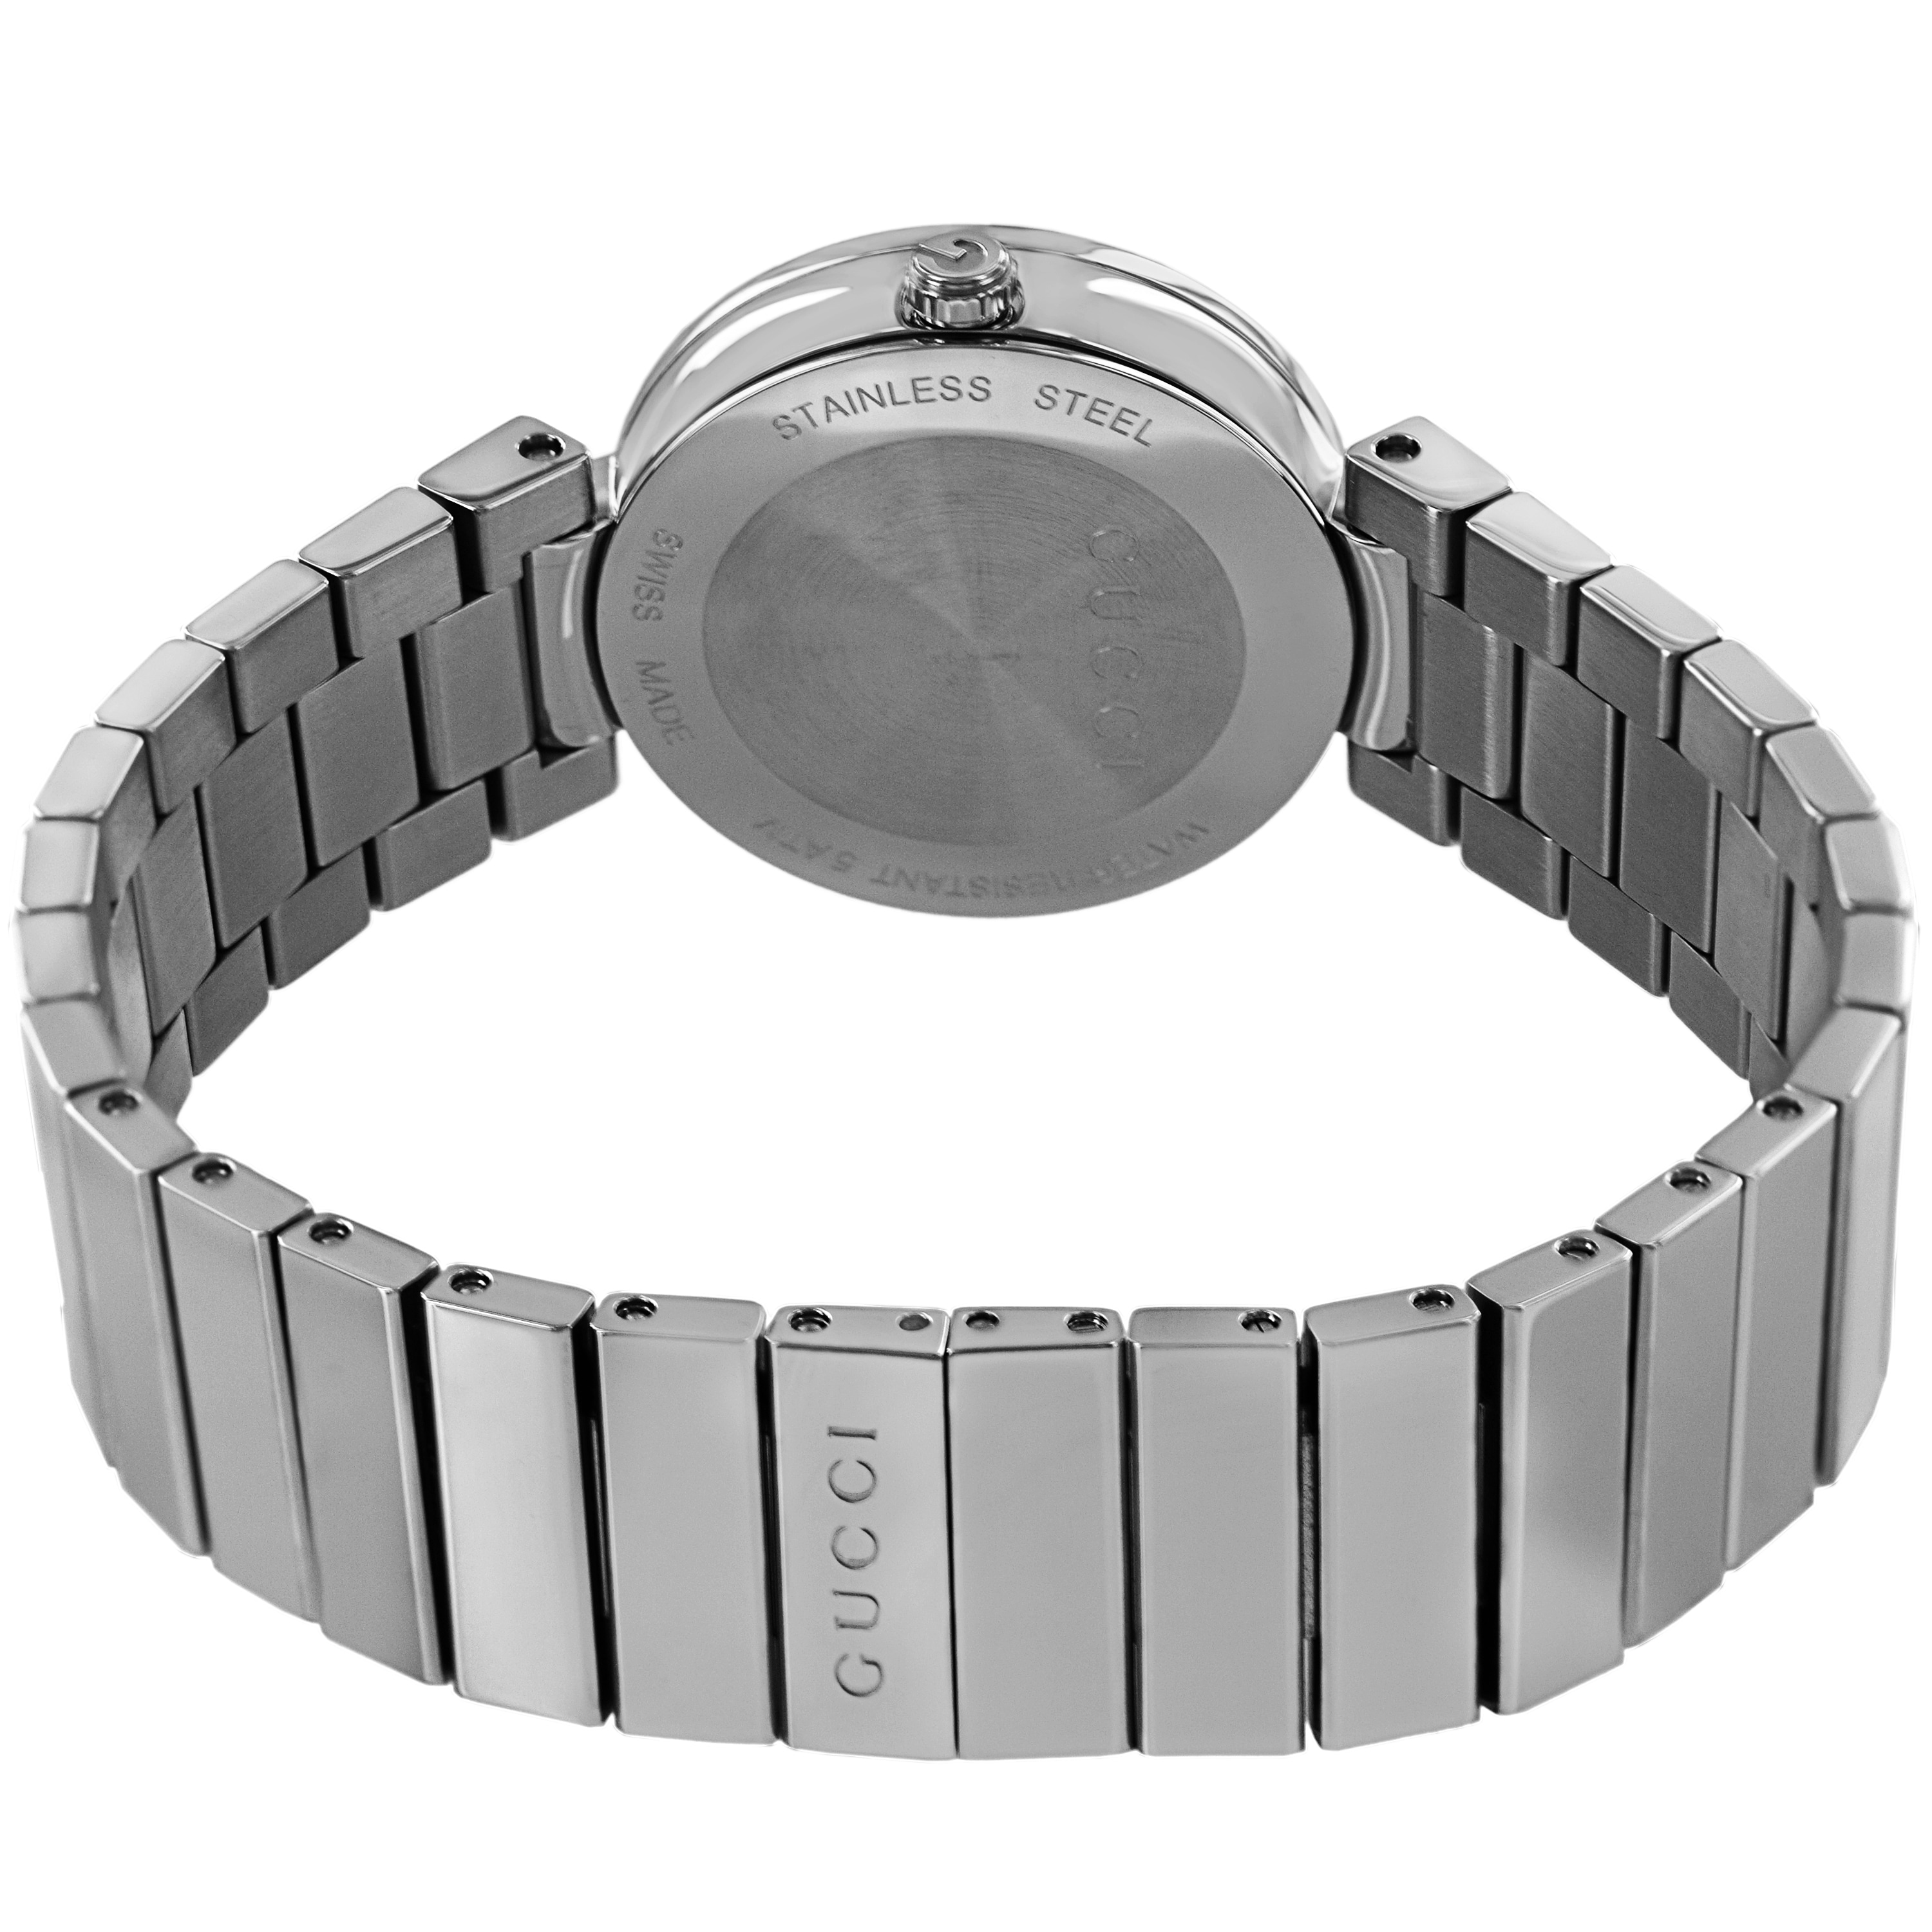 1d89fd9bcab Shop Gucci Women s YA133503  Interlocking  Black Dial Stainless Steel  Bracelet Quartz Watch - Free Shipping Today - Overstock - 8546848